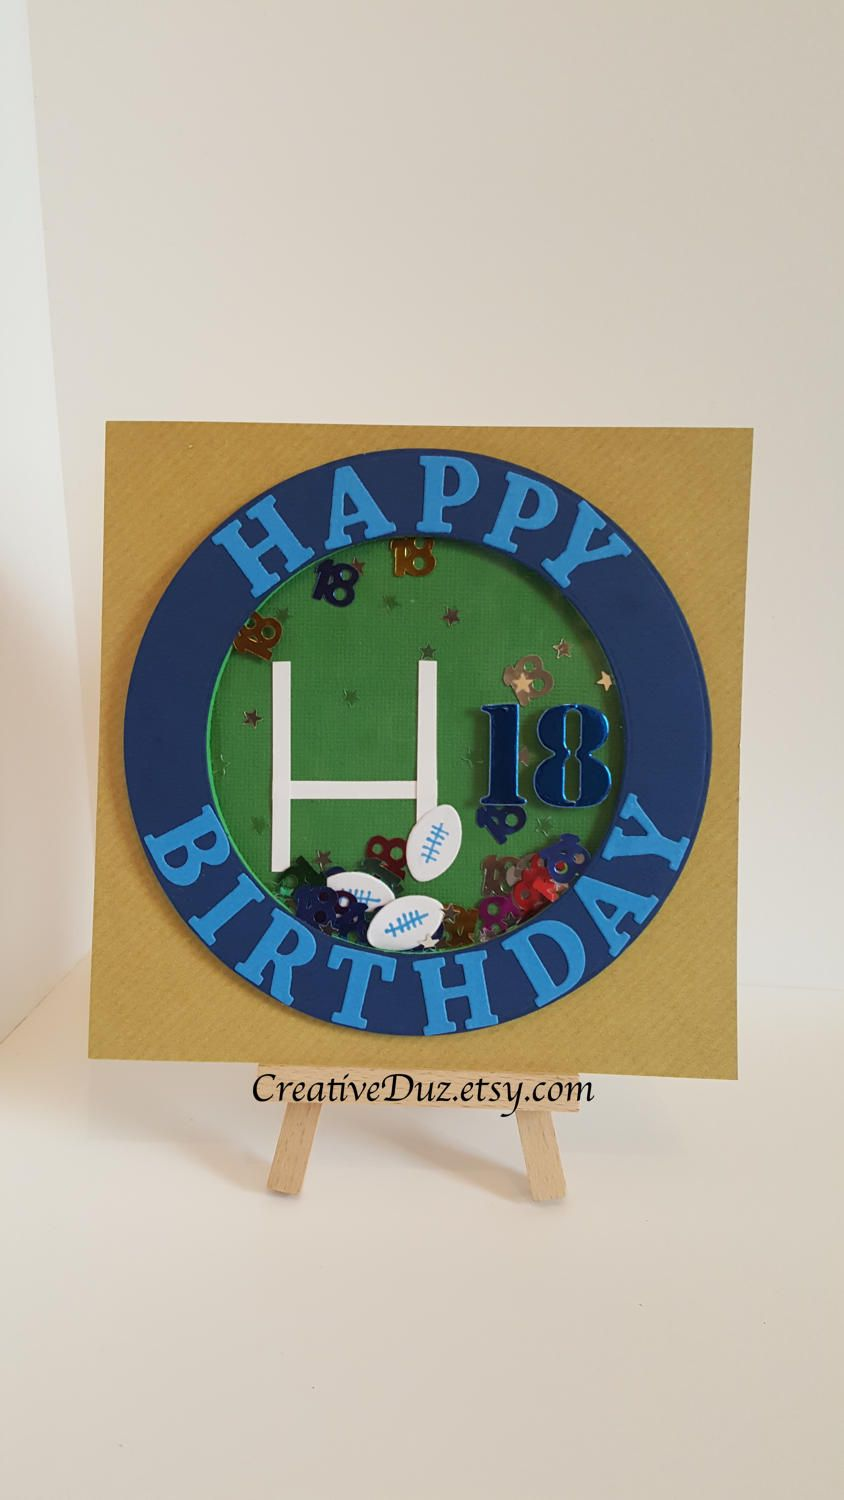 Personalised Rugby Shaker Birthday Card Football Birthday Etsy Birthday Cards For Men Birthday Cards Football Birthday